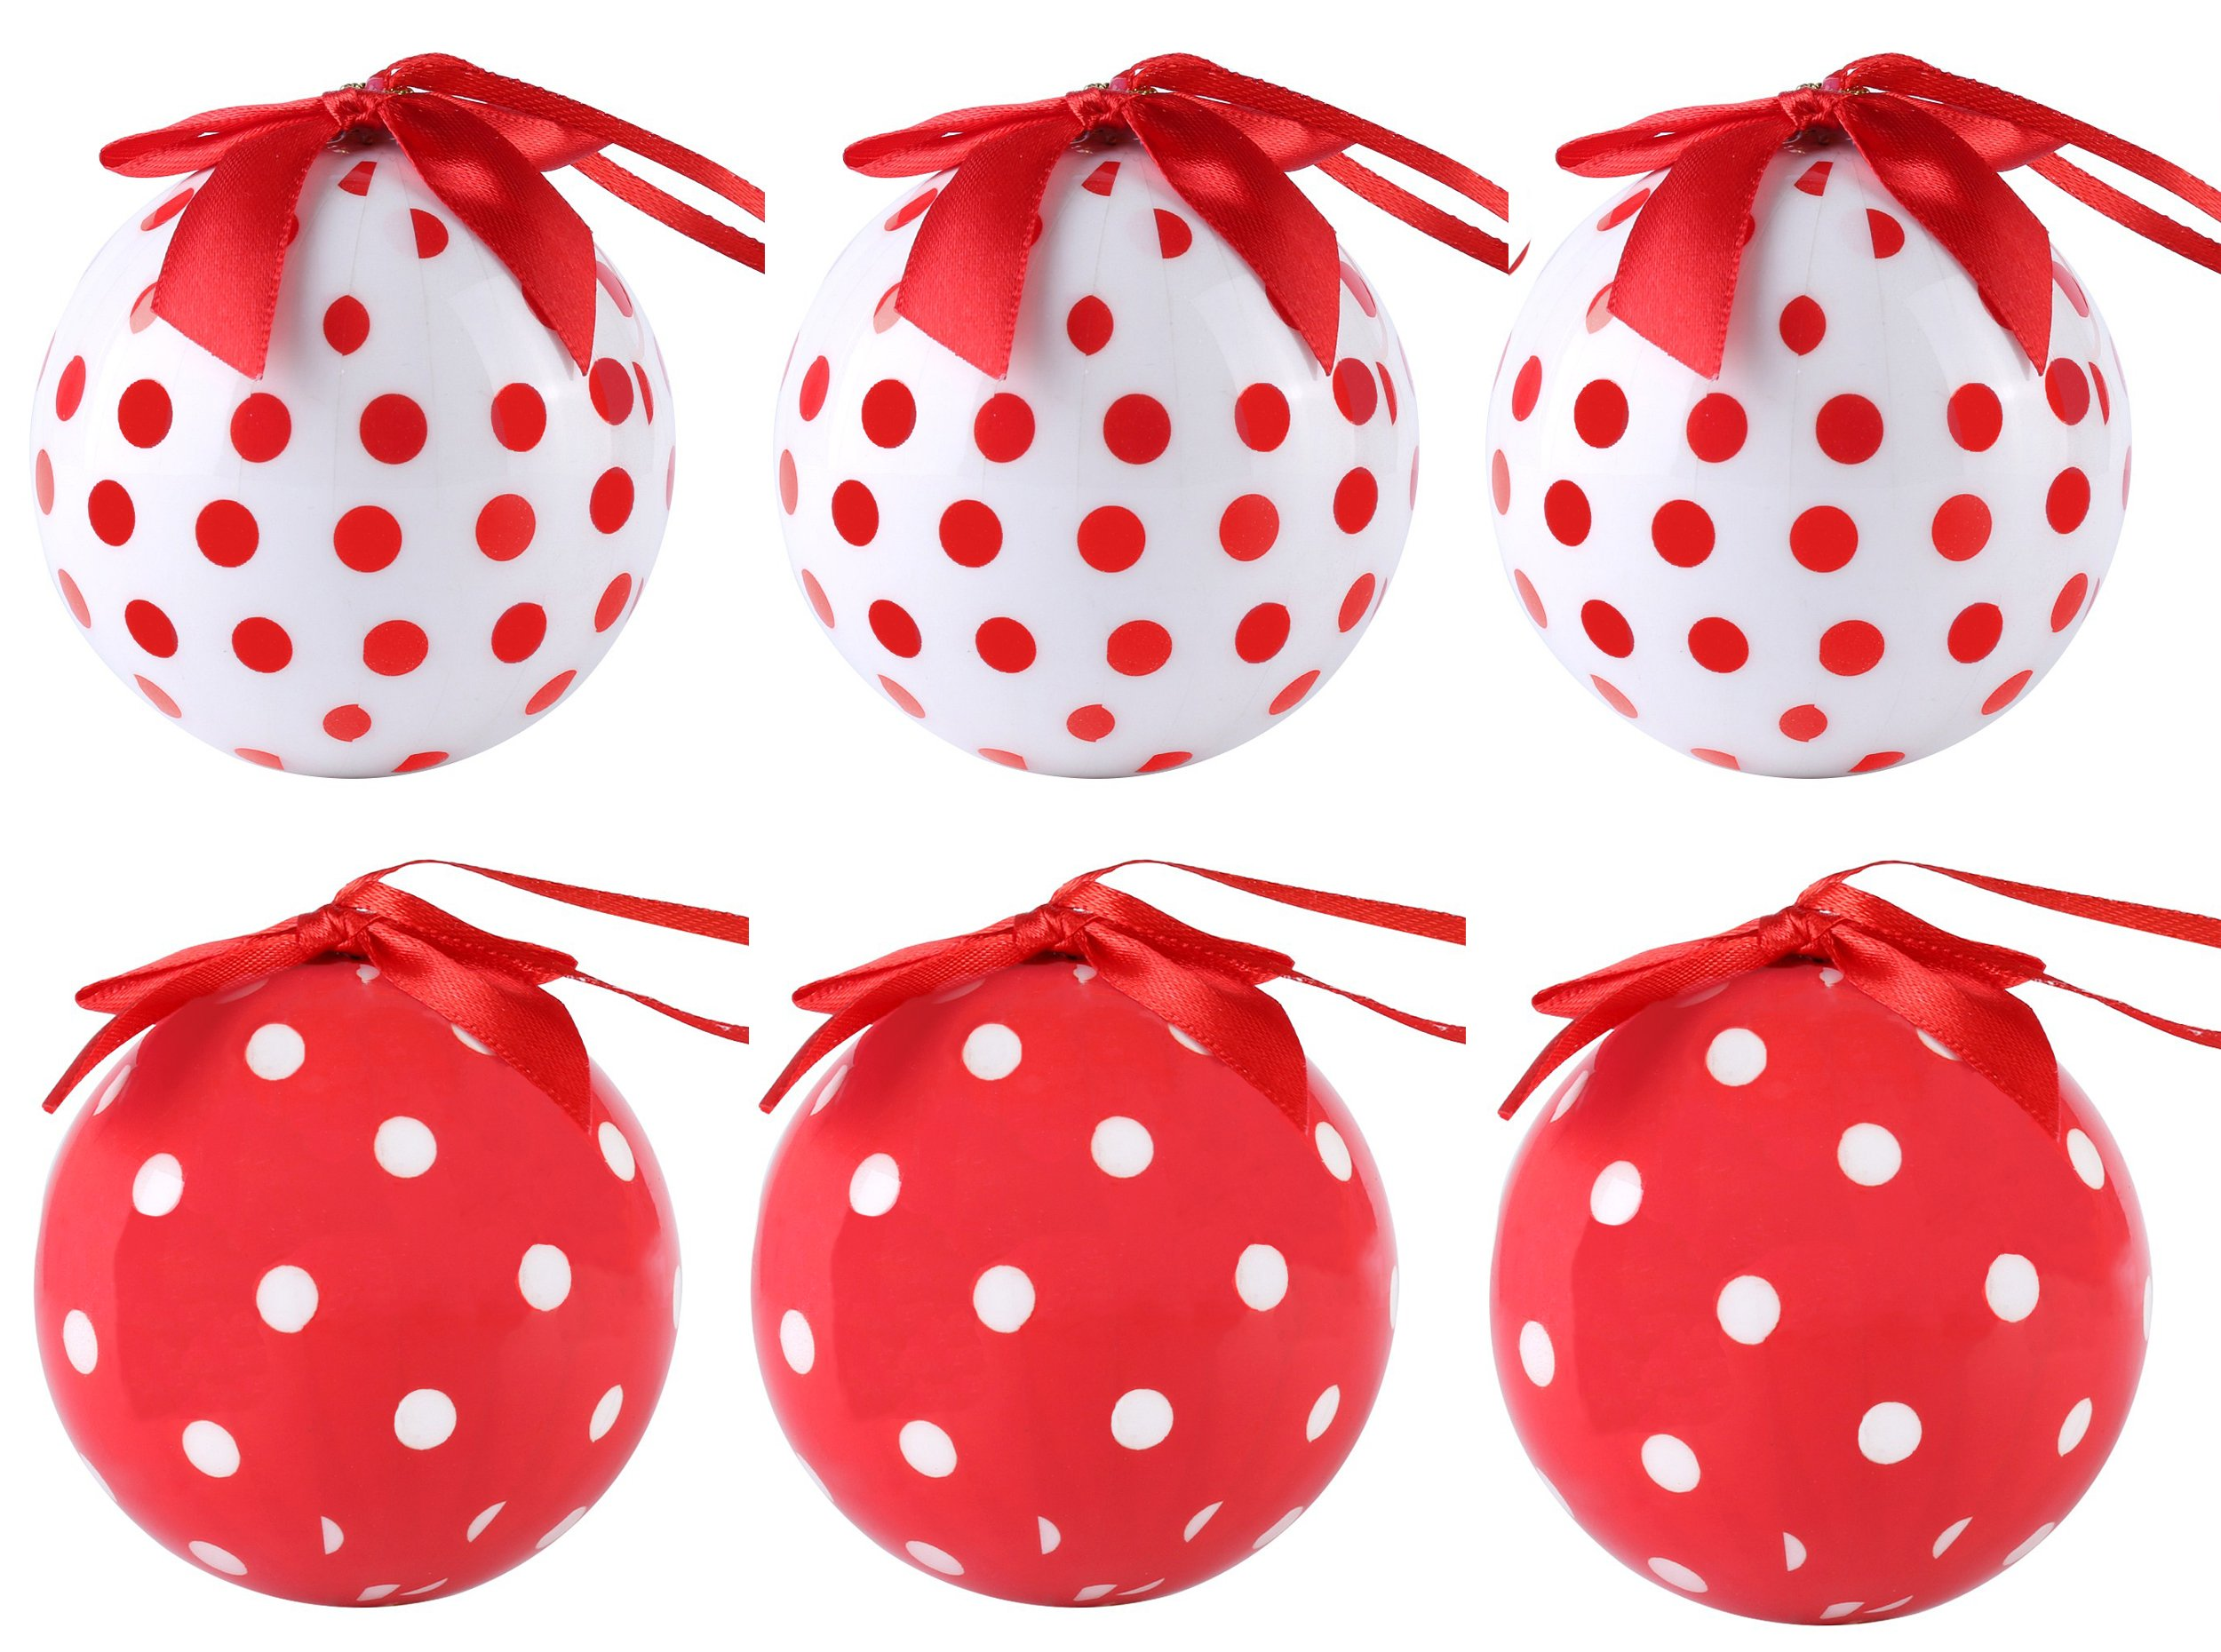 Cue Cue Festive Ready to Hang ( 24 Piece ) 12 Red + 12 White Polka Dots Ornament Set